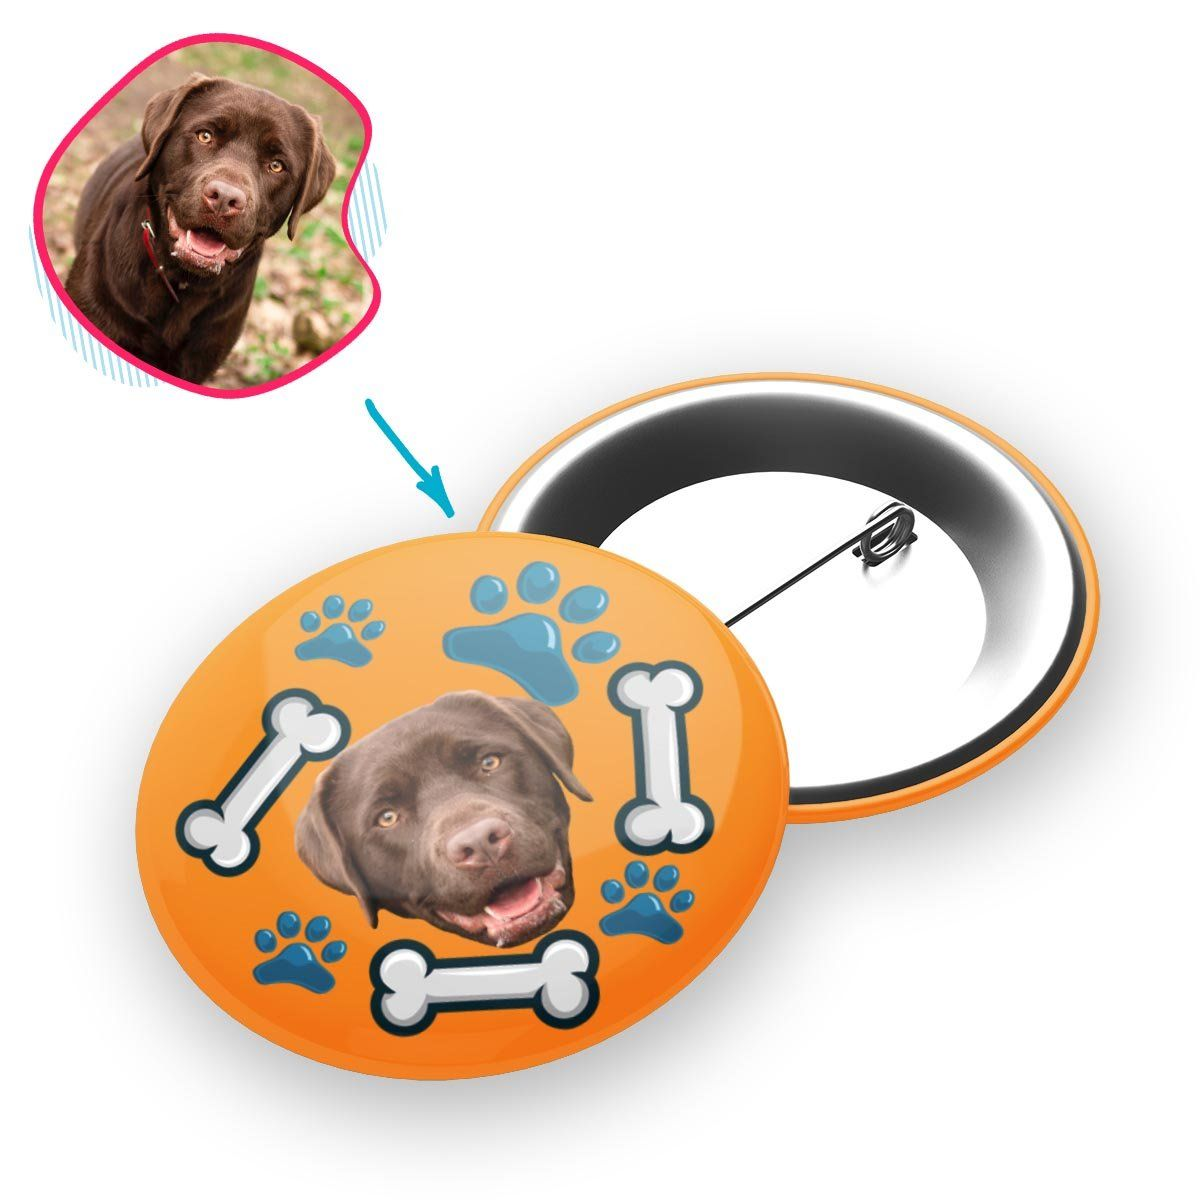 orange Dog pin personalized with photo of face printed on it